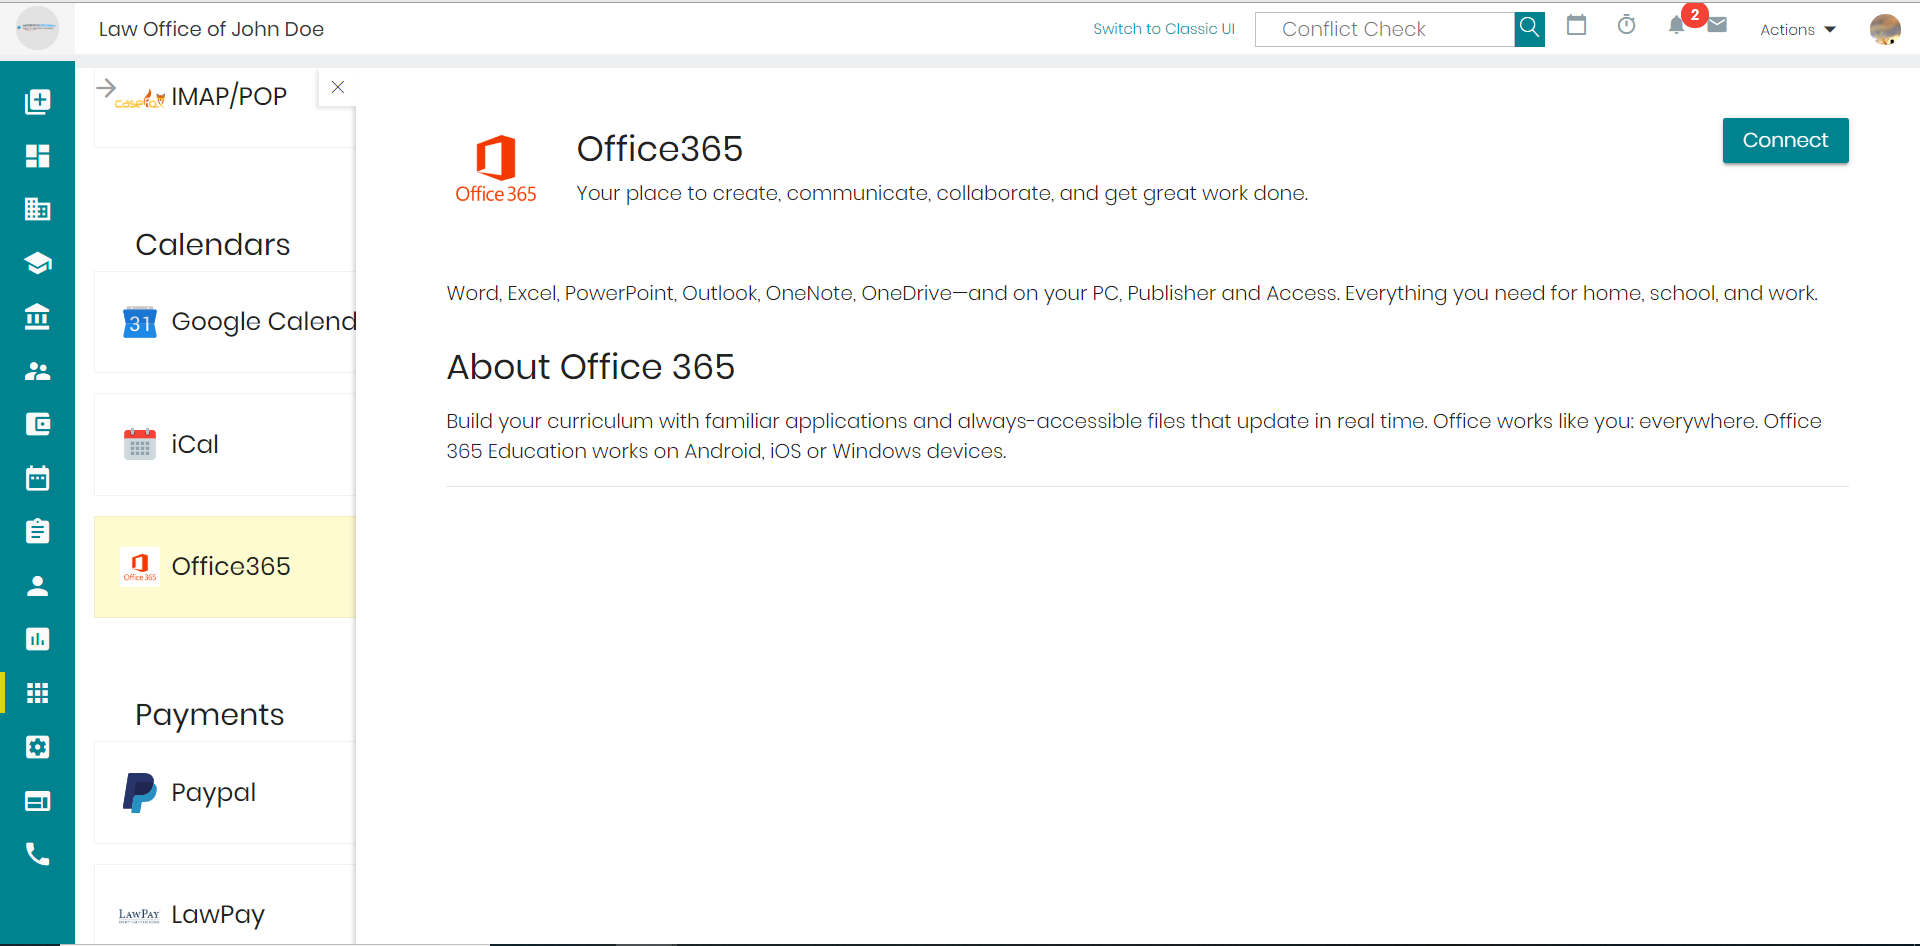 CaseFox Integration With Office 365